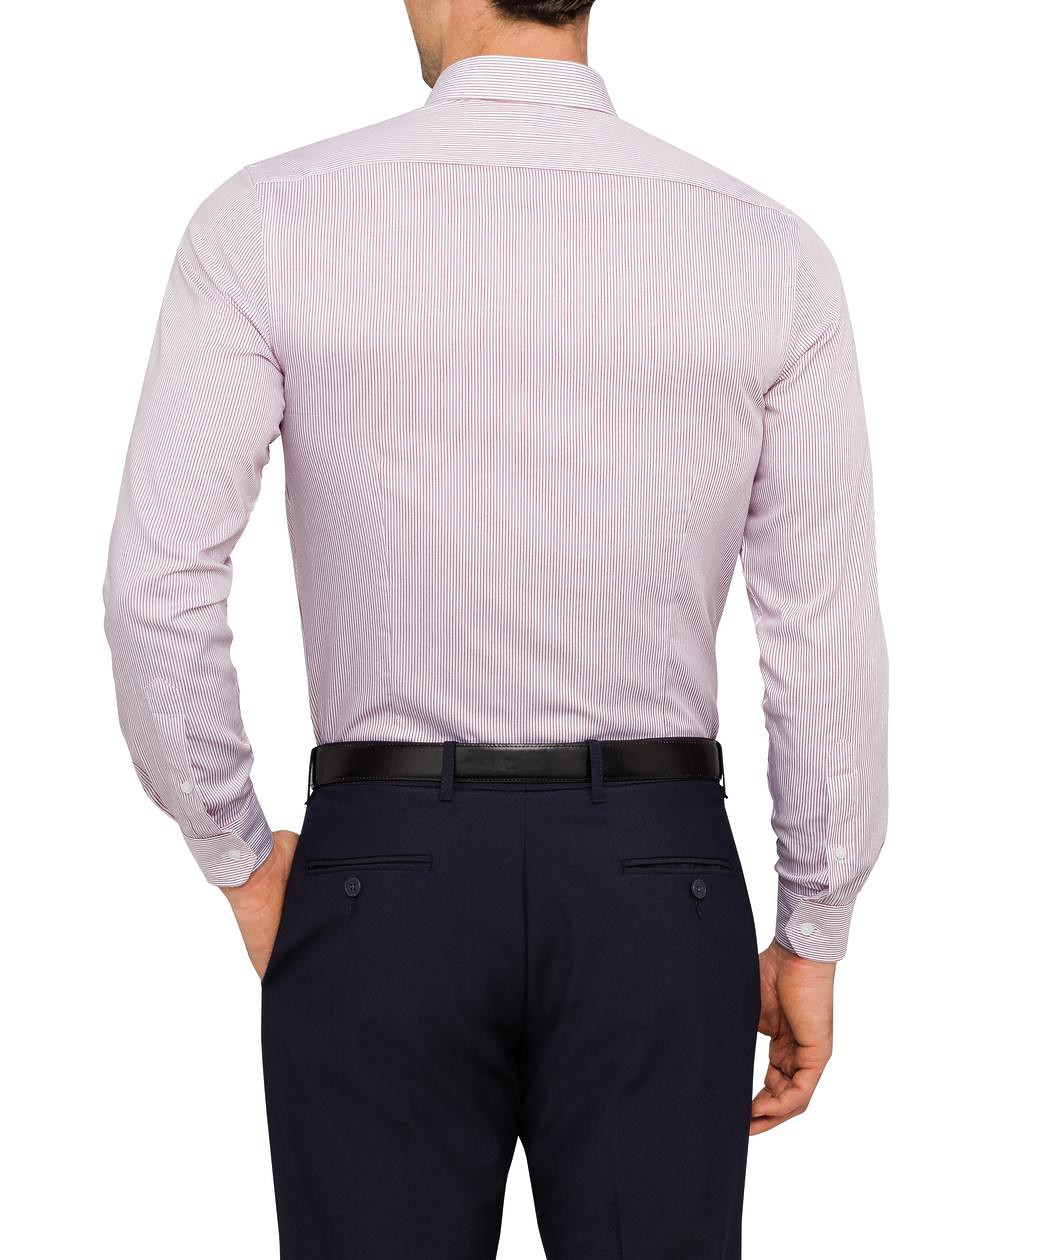 Van Heusen clothing. Van Heusen clothing has long been very popular. This is supported by a network of shops throughout the US, which has every year a large turnover, as well as several Van Heusen online stores, where you can find goods for reasonable prices. If you are looking for Van Heusen clothes, we recommend to visit one of the online.